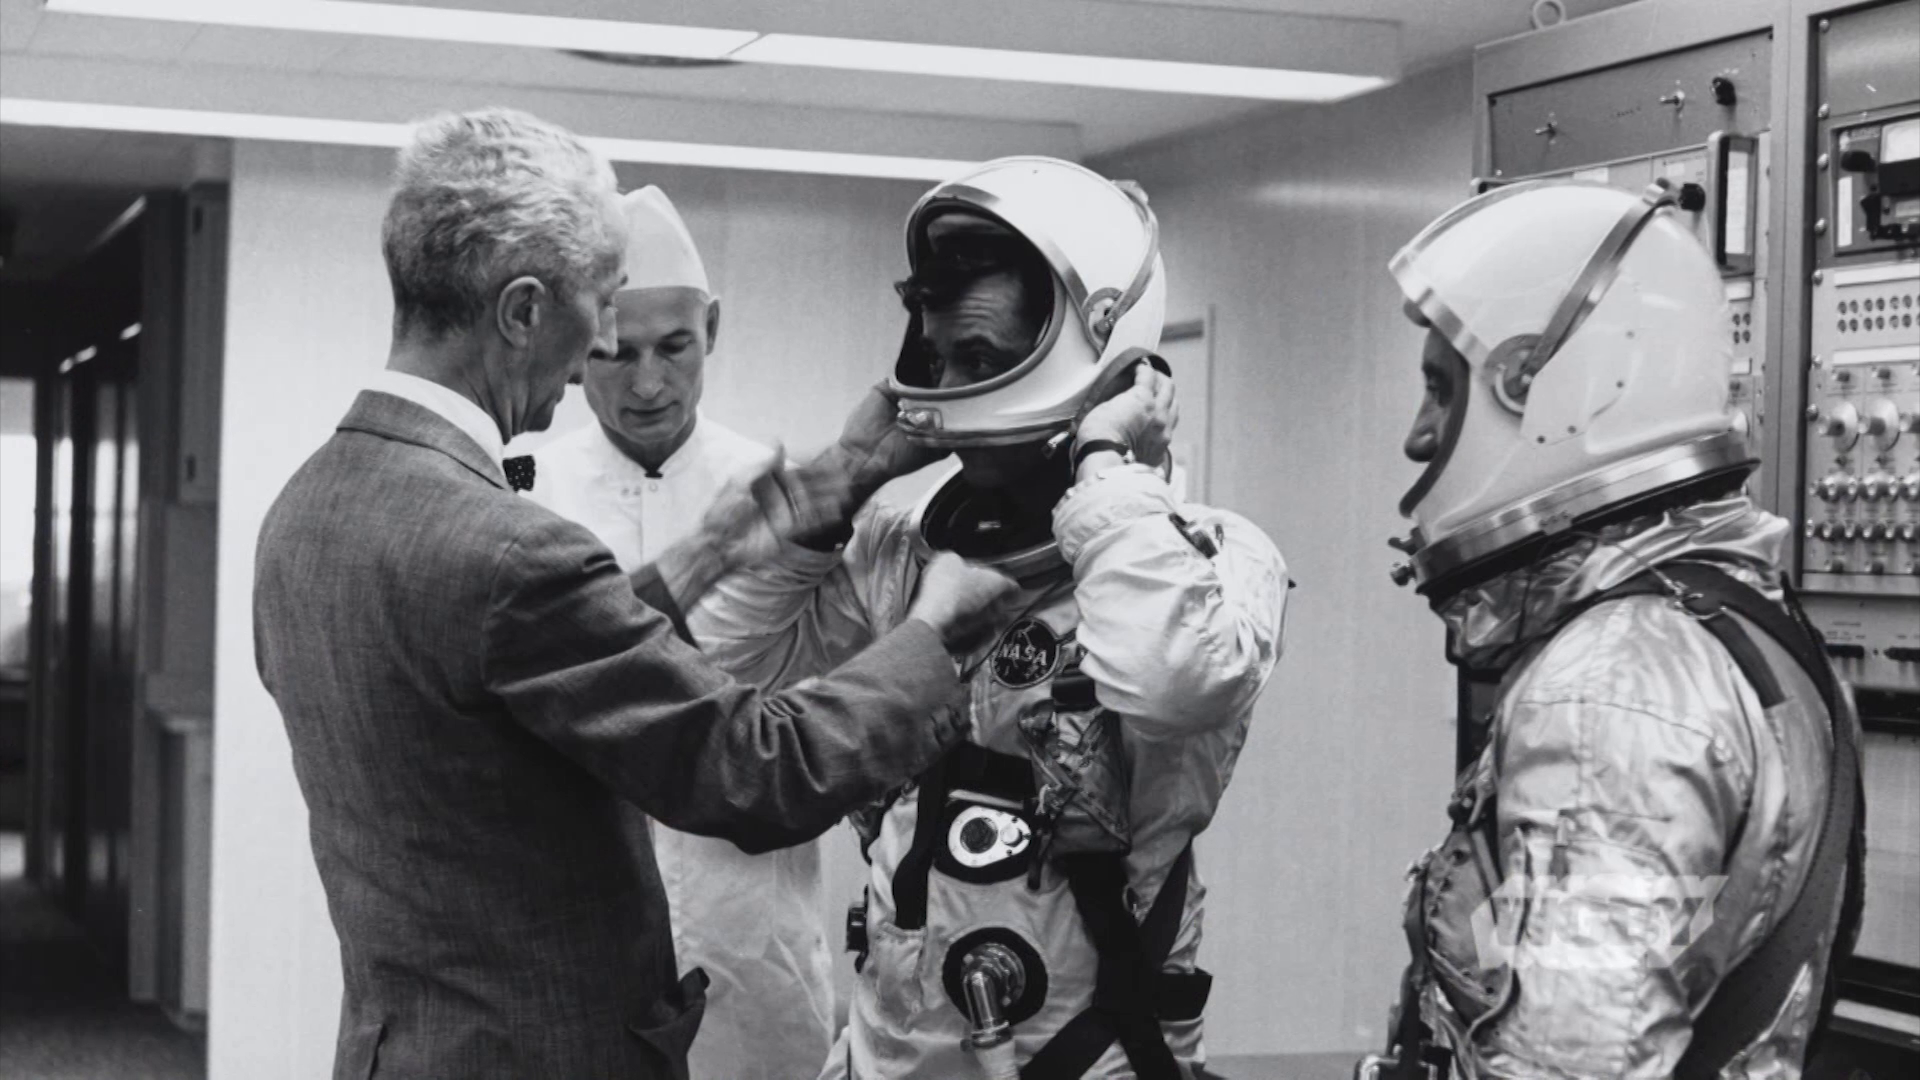 On July 20, 1969, Americans won the Space Race & put the first man on the moon. Meet some New England residents who helped with Apollo 11's moon landing.